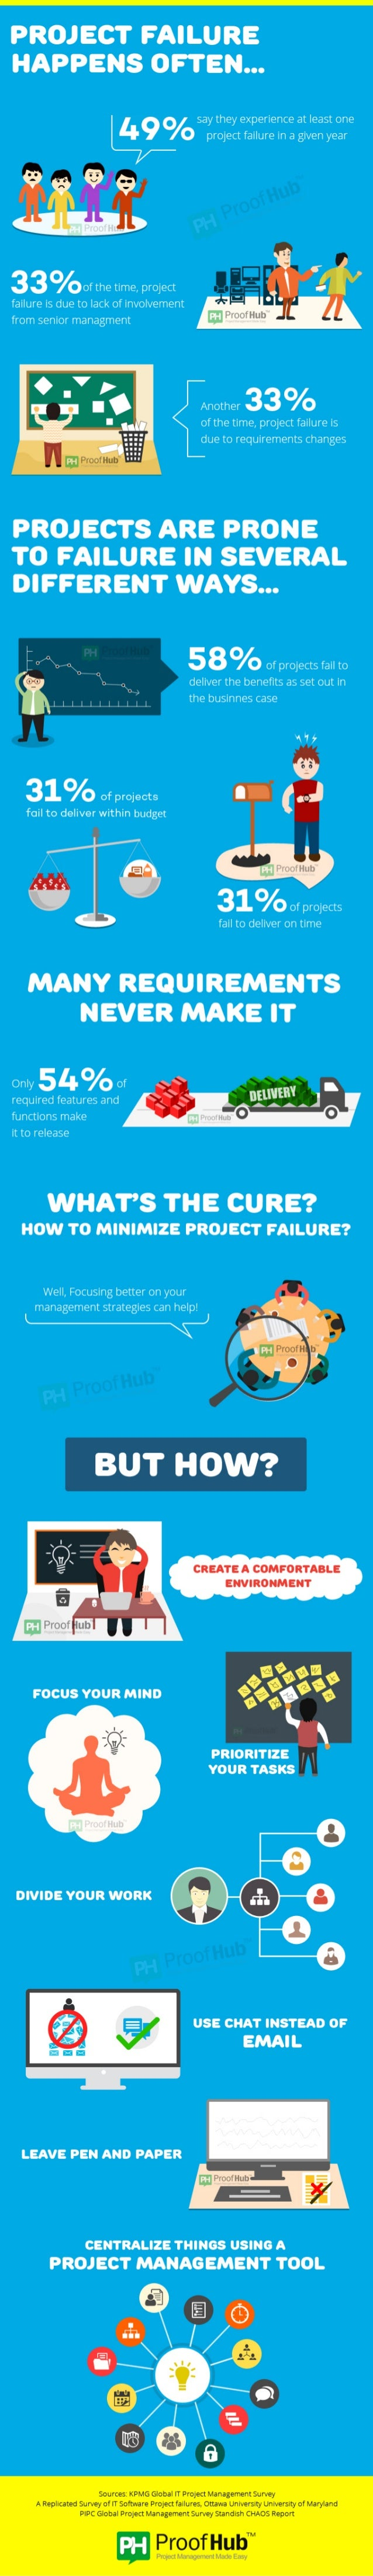 PROJECT FAILURE HAPPENS OFTEN. ..  9 0 say they experience at least one A /0 project failure in a given year      3 3 %of ...